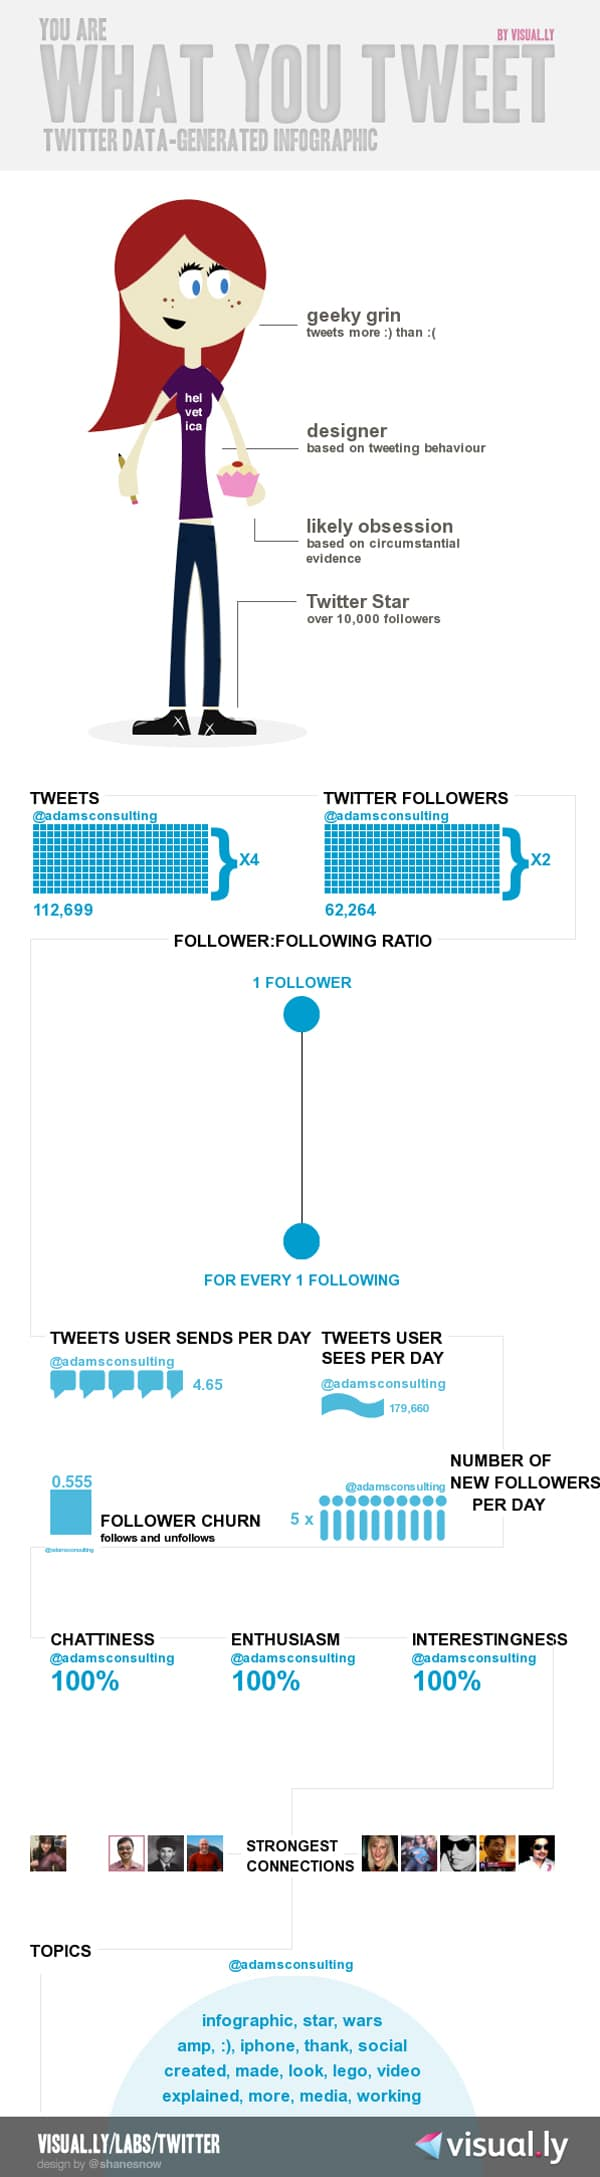 You Are What You Tweet [Infographic Generator]